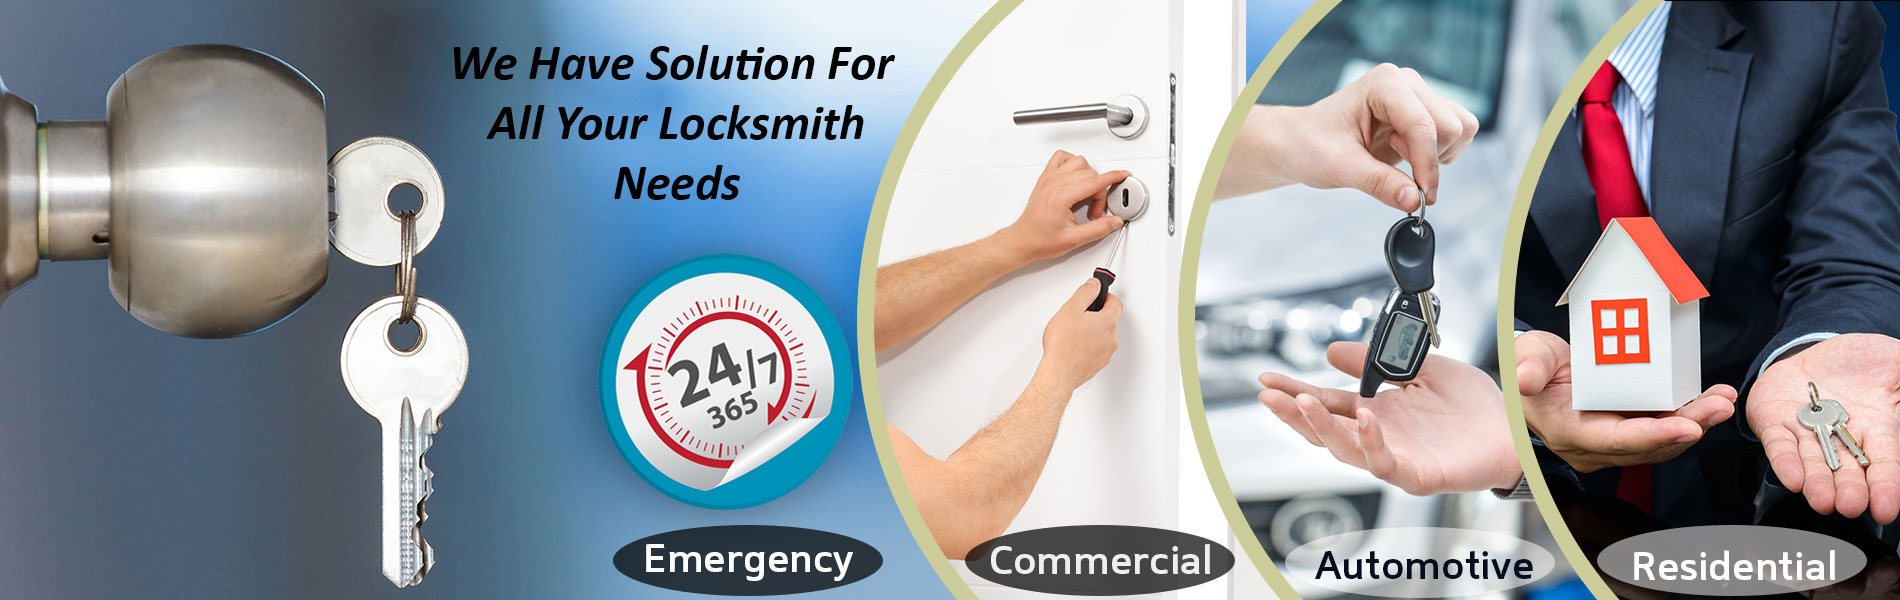 Neighborhood Locksmith Store Merrick, NY 516-962-5486